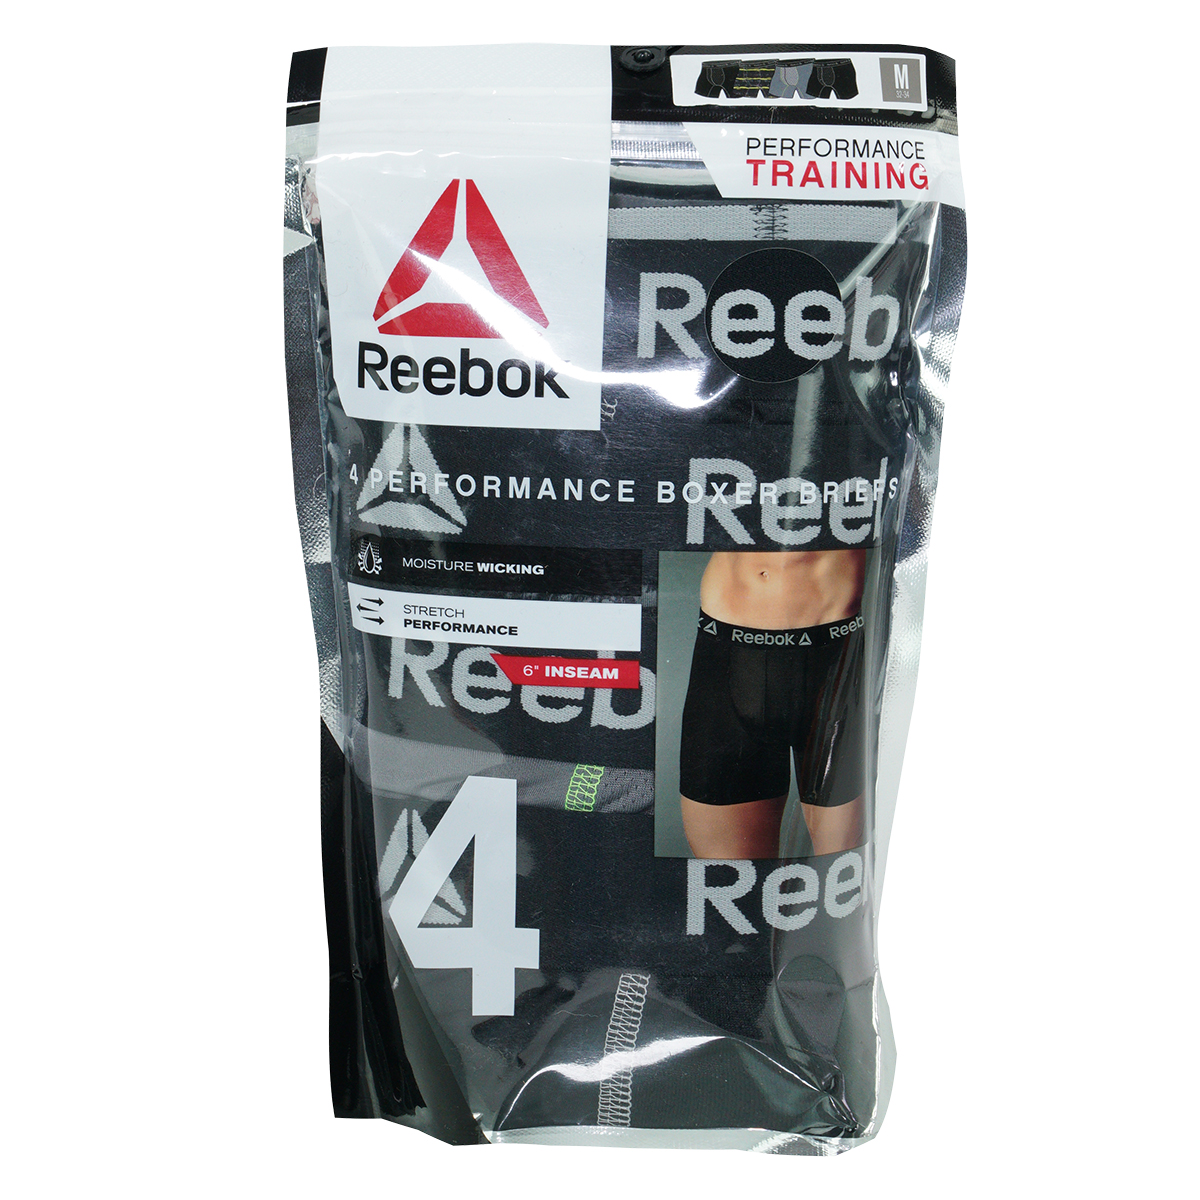 Reebok-Men-039-s-Performance-Boxer-Briefs-4-Pack thumbnail 13